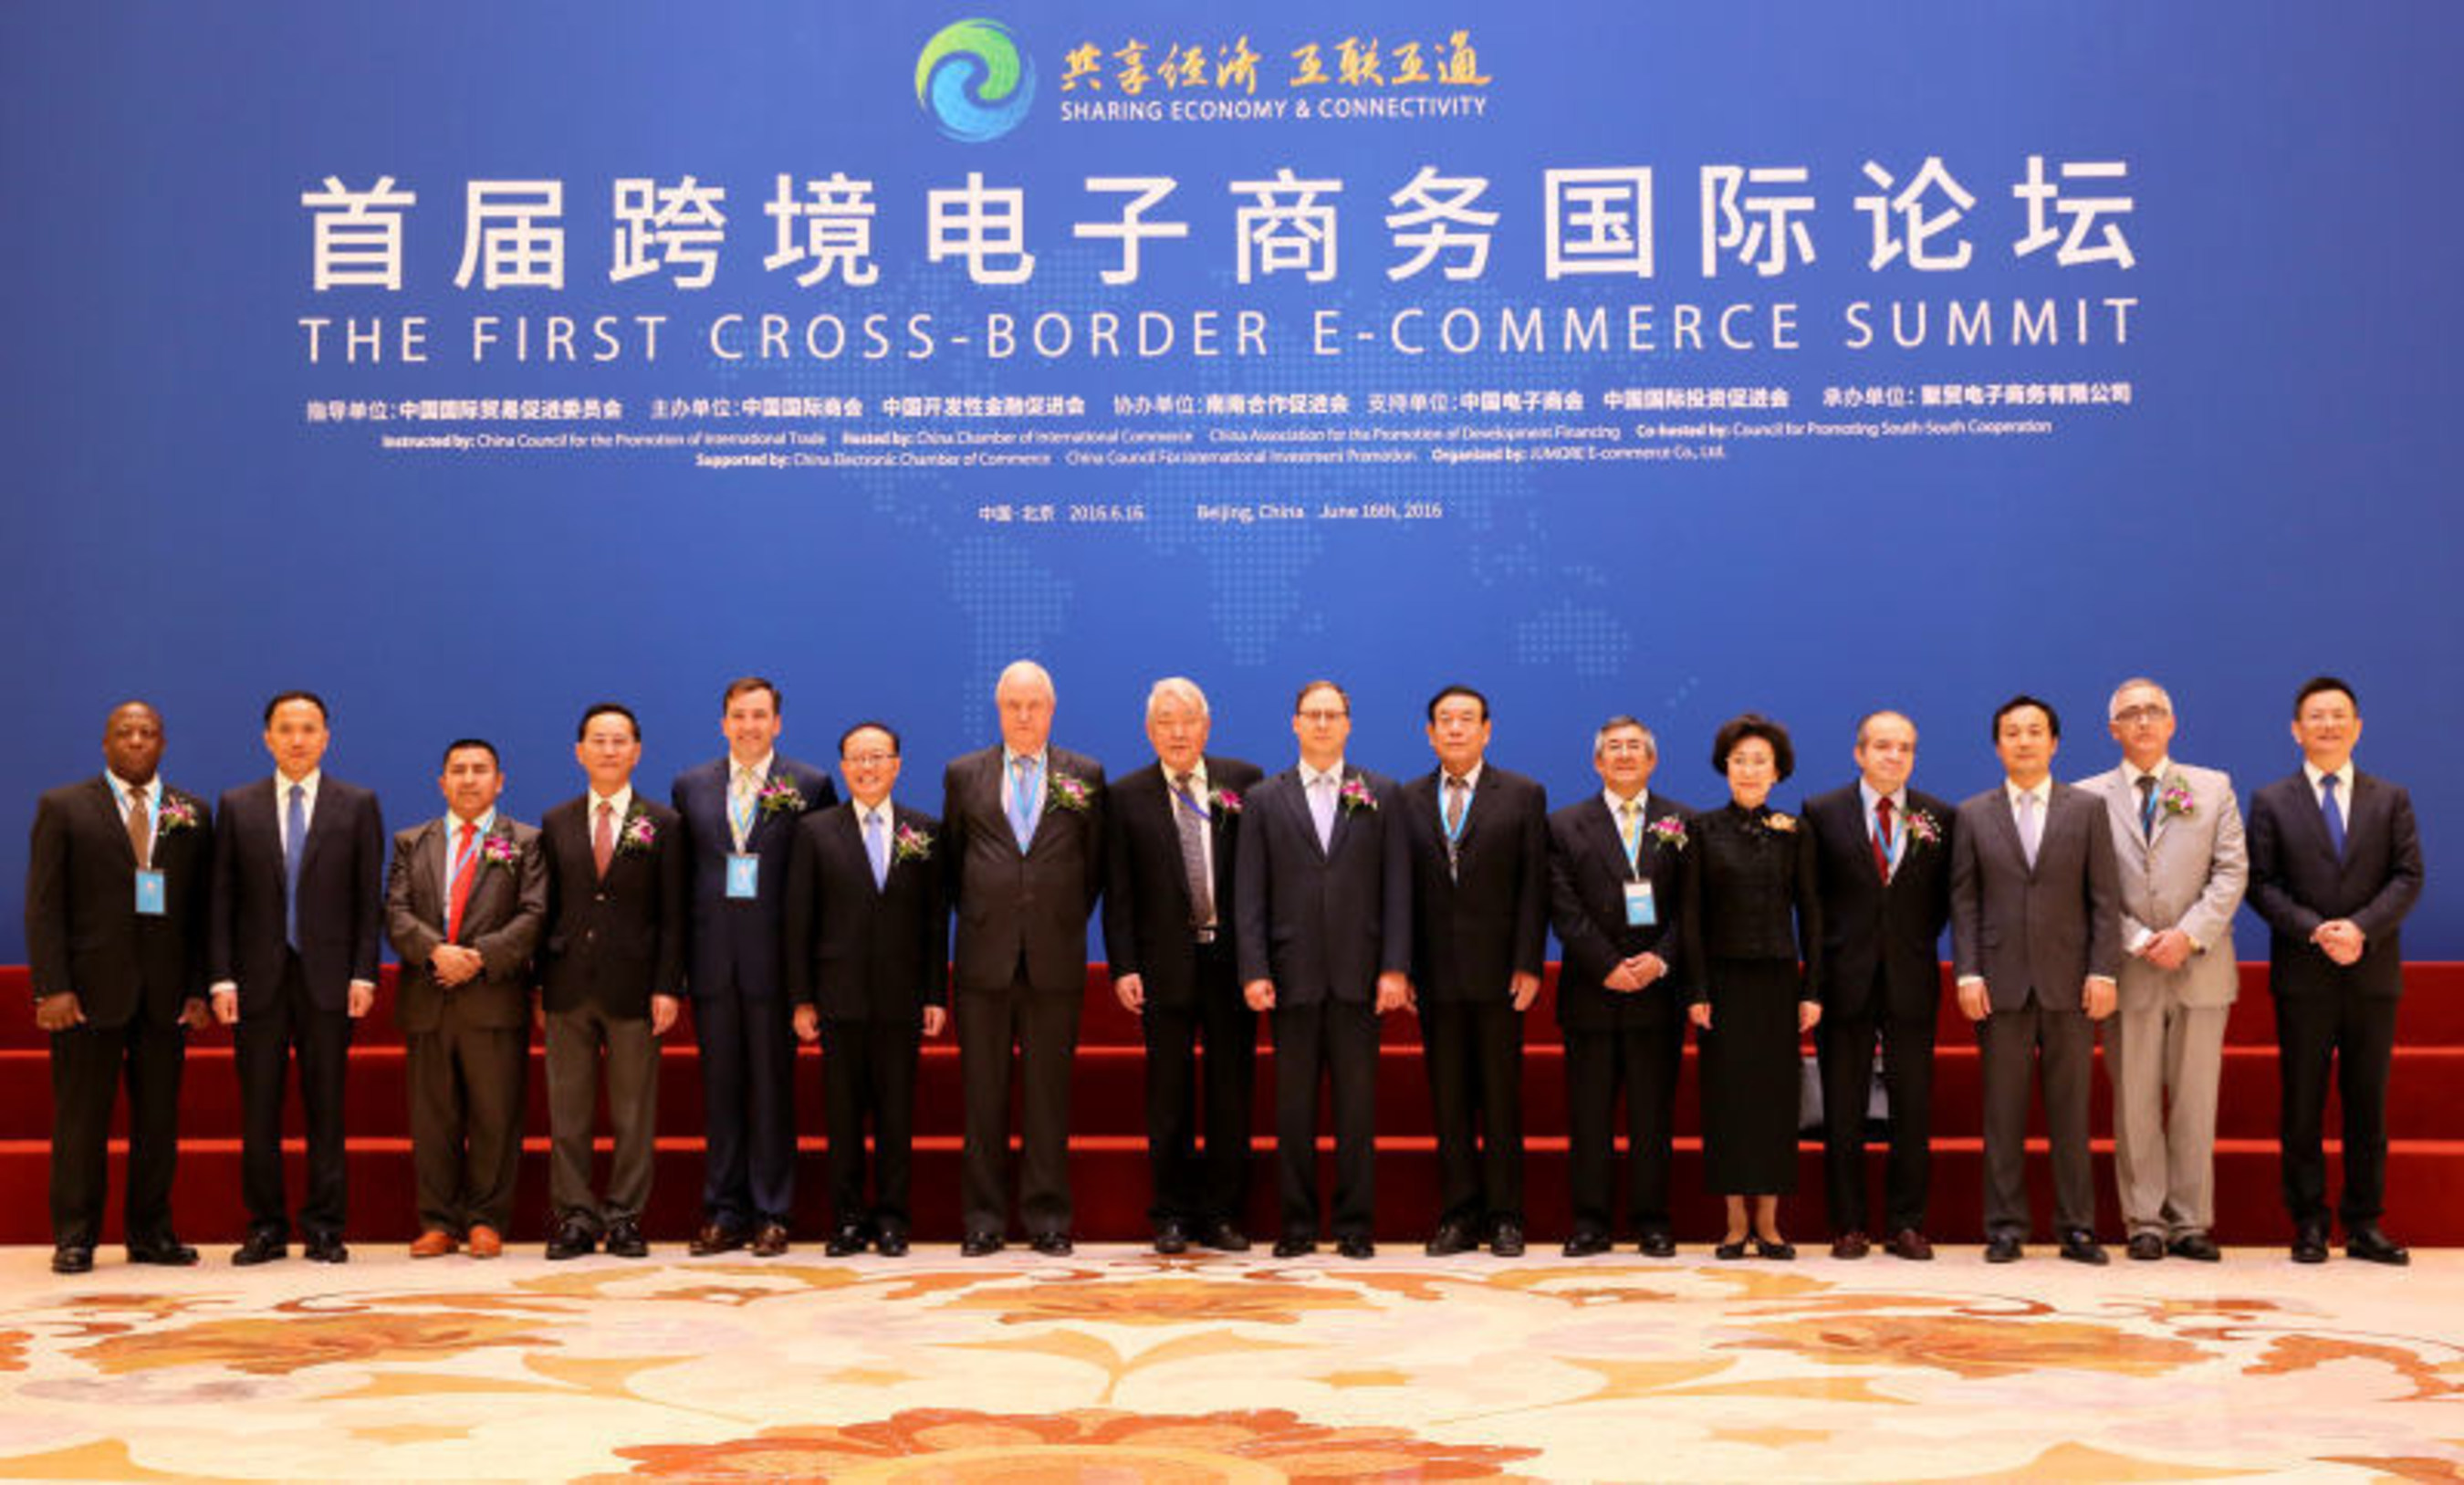 The First Cross-Border E-Commerce Summit held in Beijing 2016